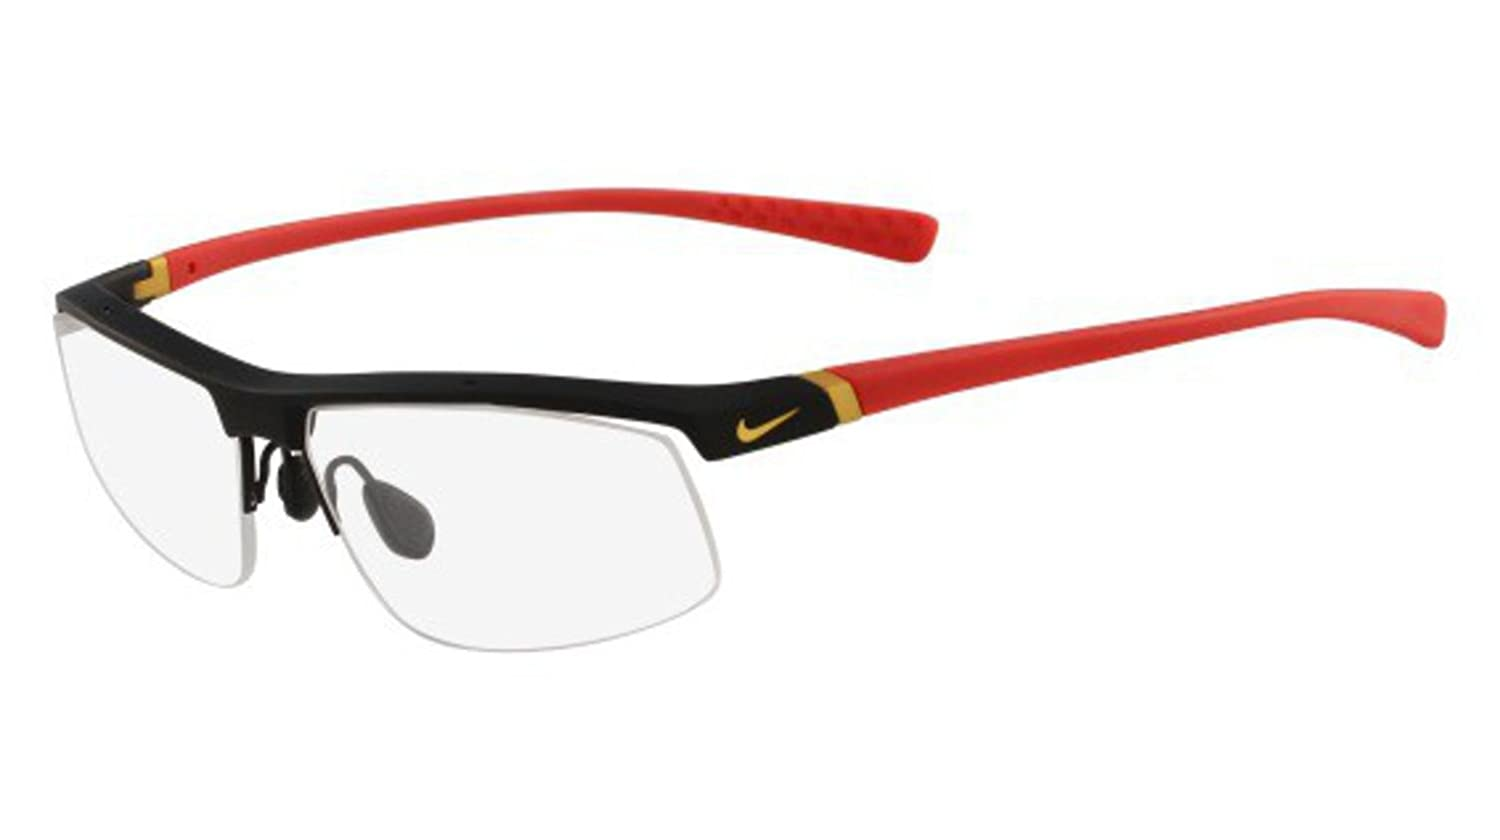 a14f8716d1 Eyeglasses NIKE 7071 3 016 MATTE BLACK CHALLENGE RED at Amazon Men s  Clothing store